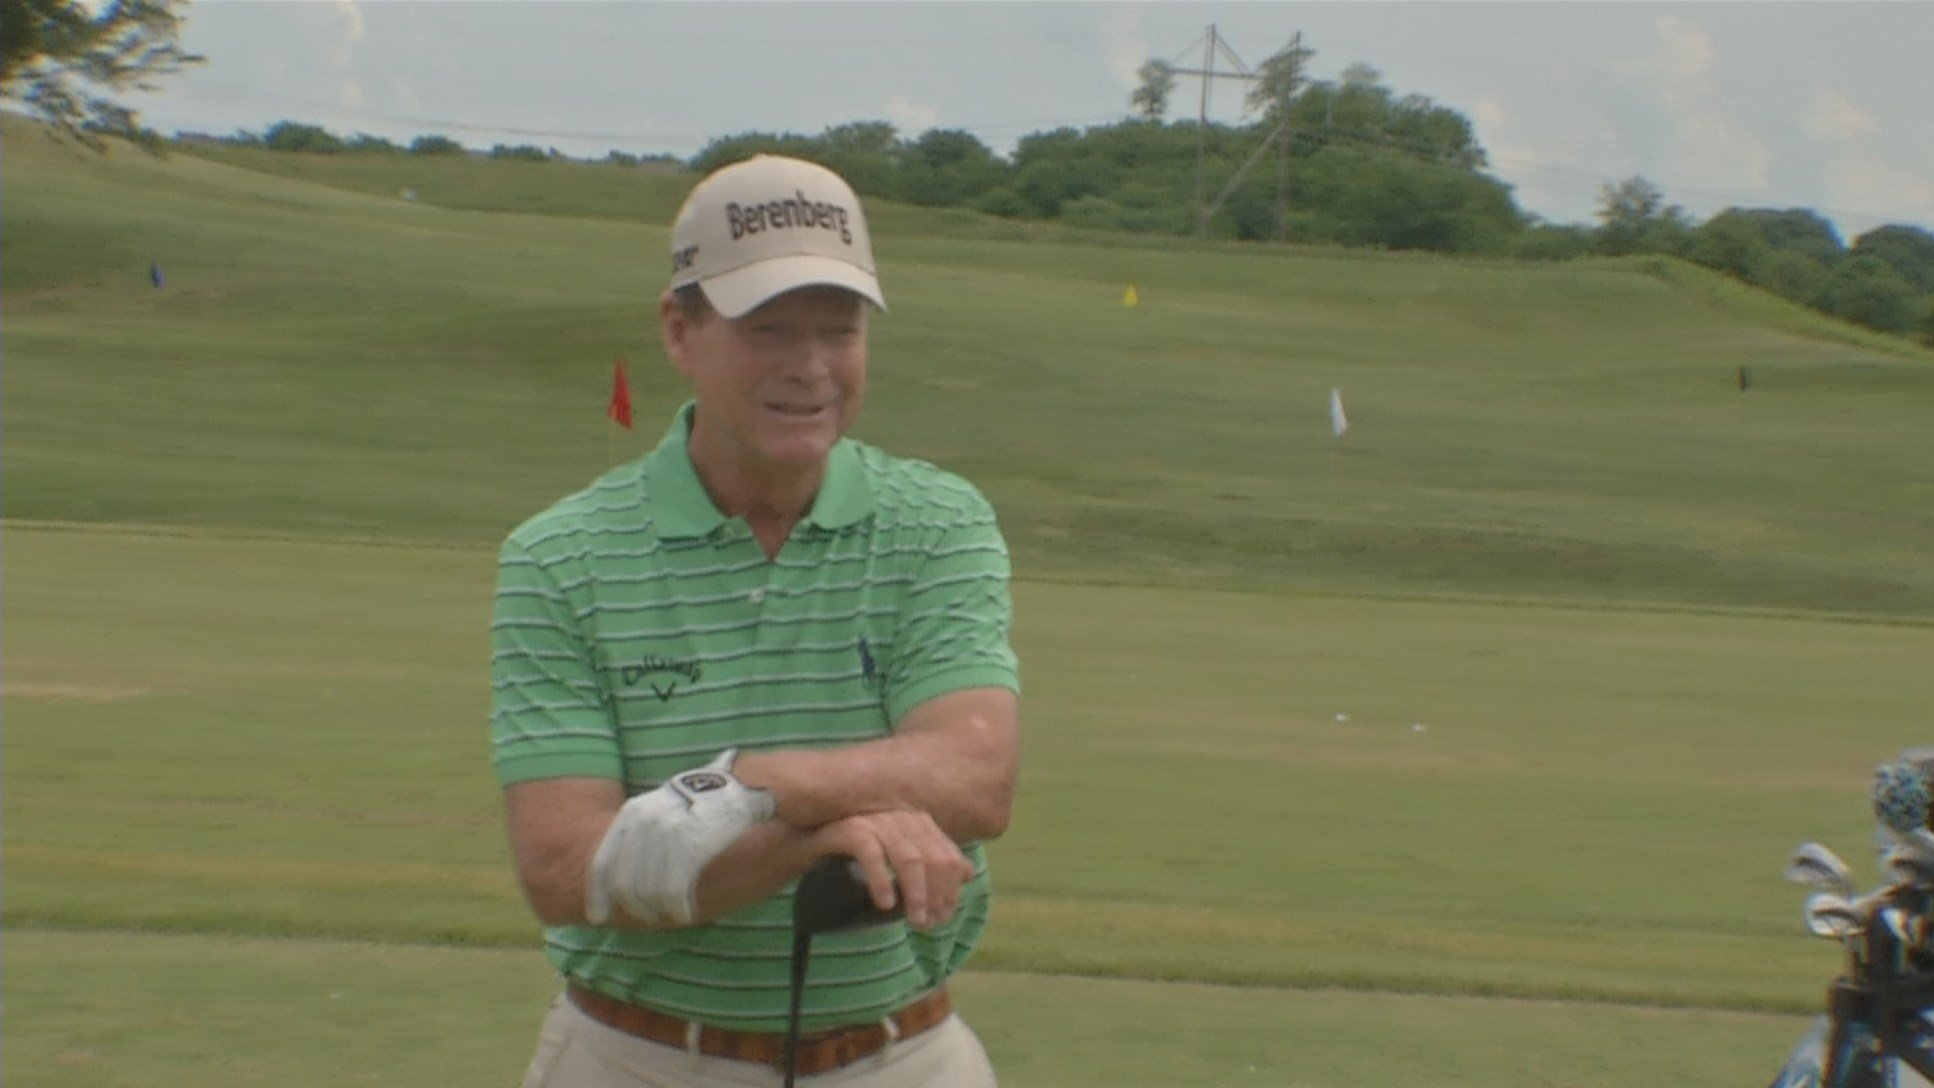 For years, Tom Watson has helped teach Kansas Citians about the game of golf. His example is now showing us how to react to the tough breaks life can throw our way. (KCTV5)